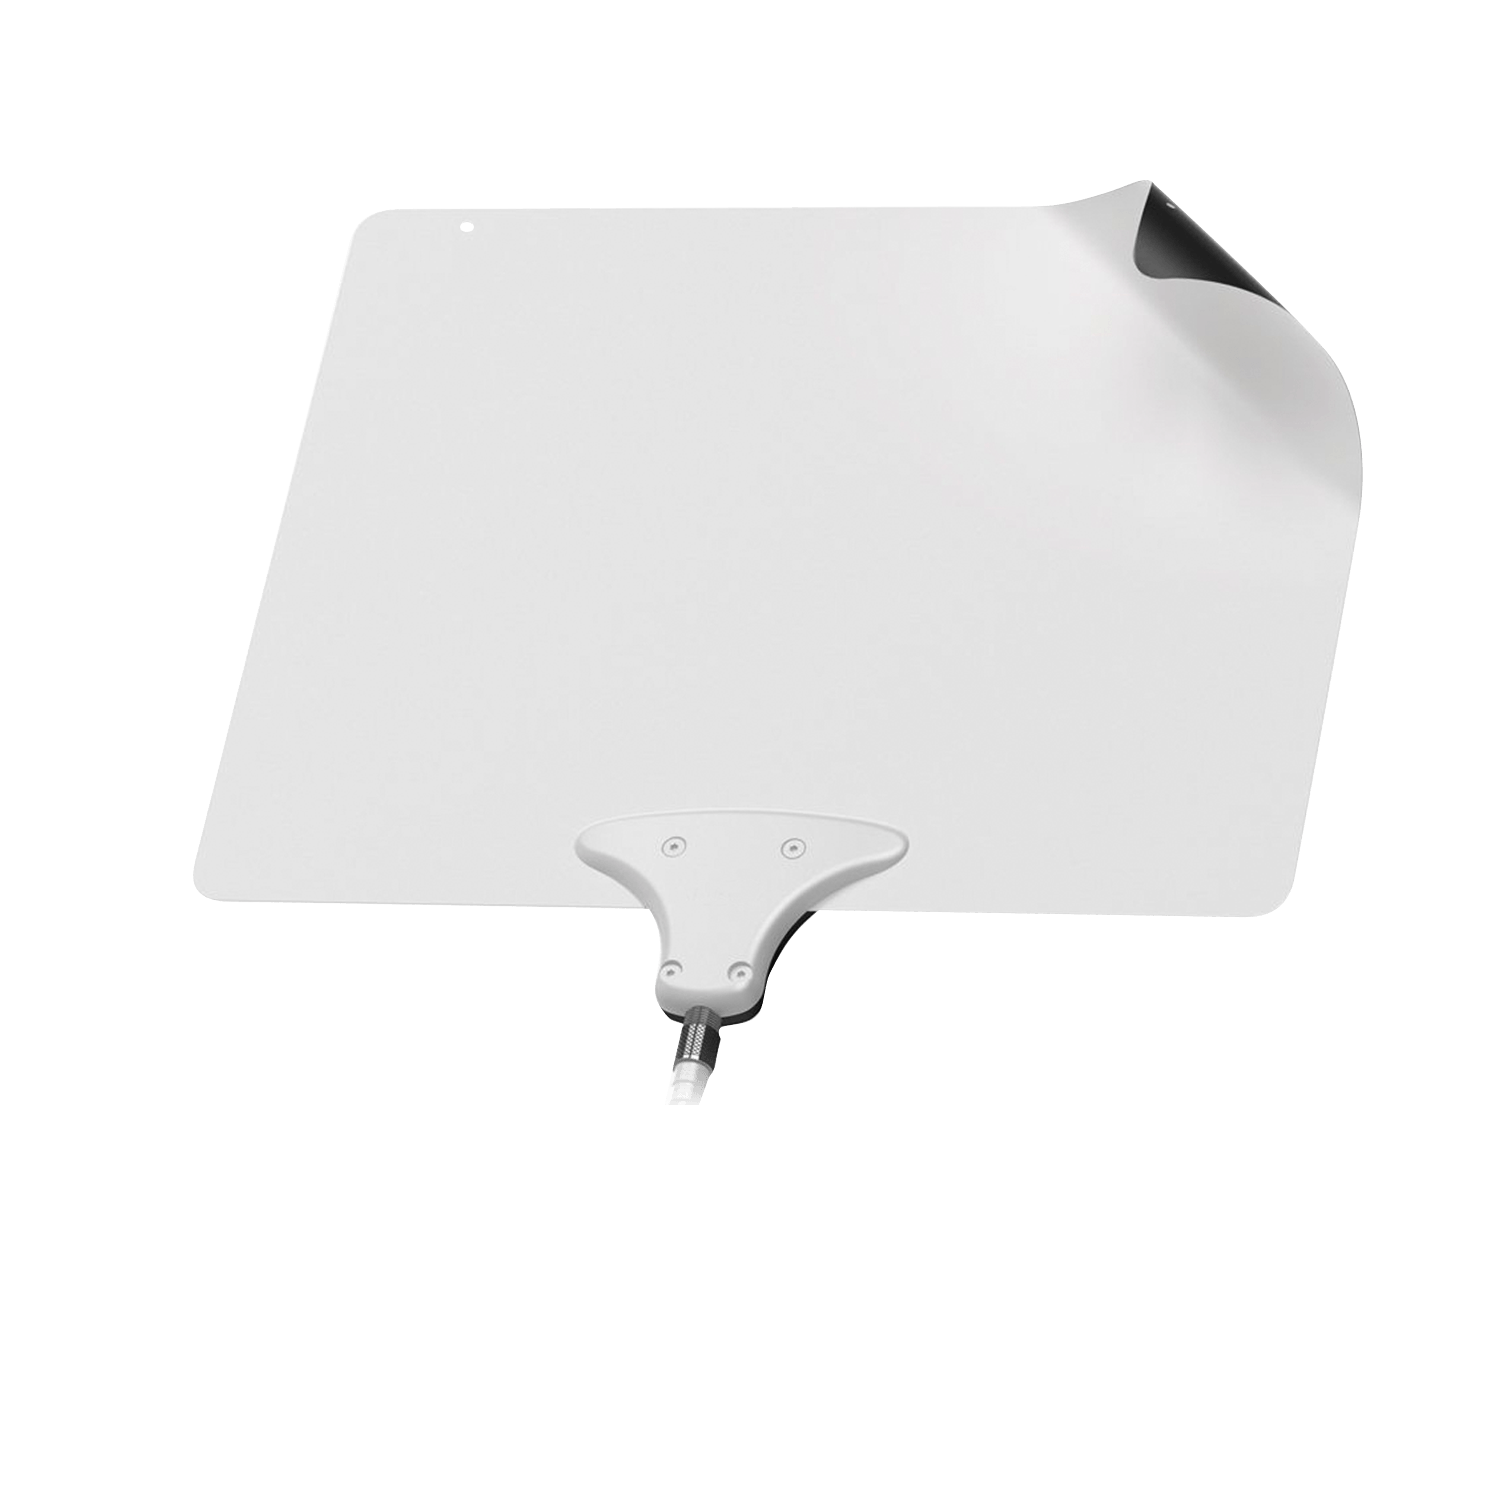 Streaming Player Accessories - Mohu Leaf® Indoor Amplified HDTV Antennas